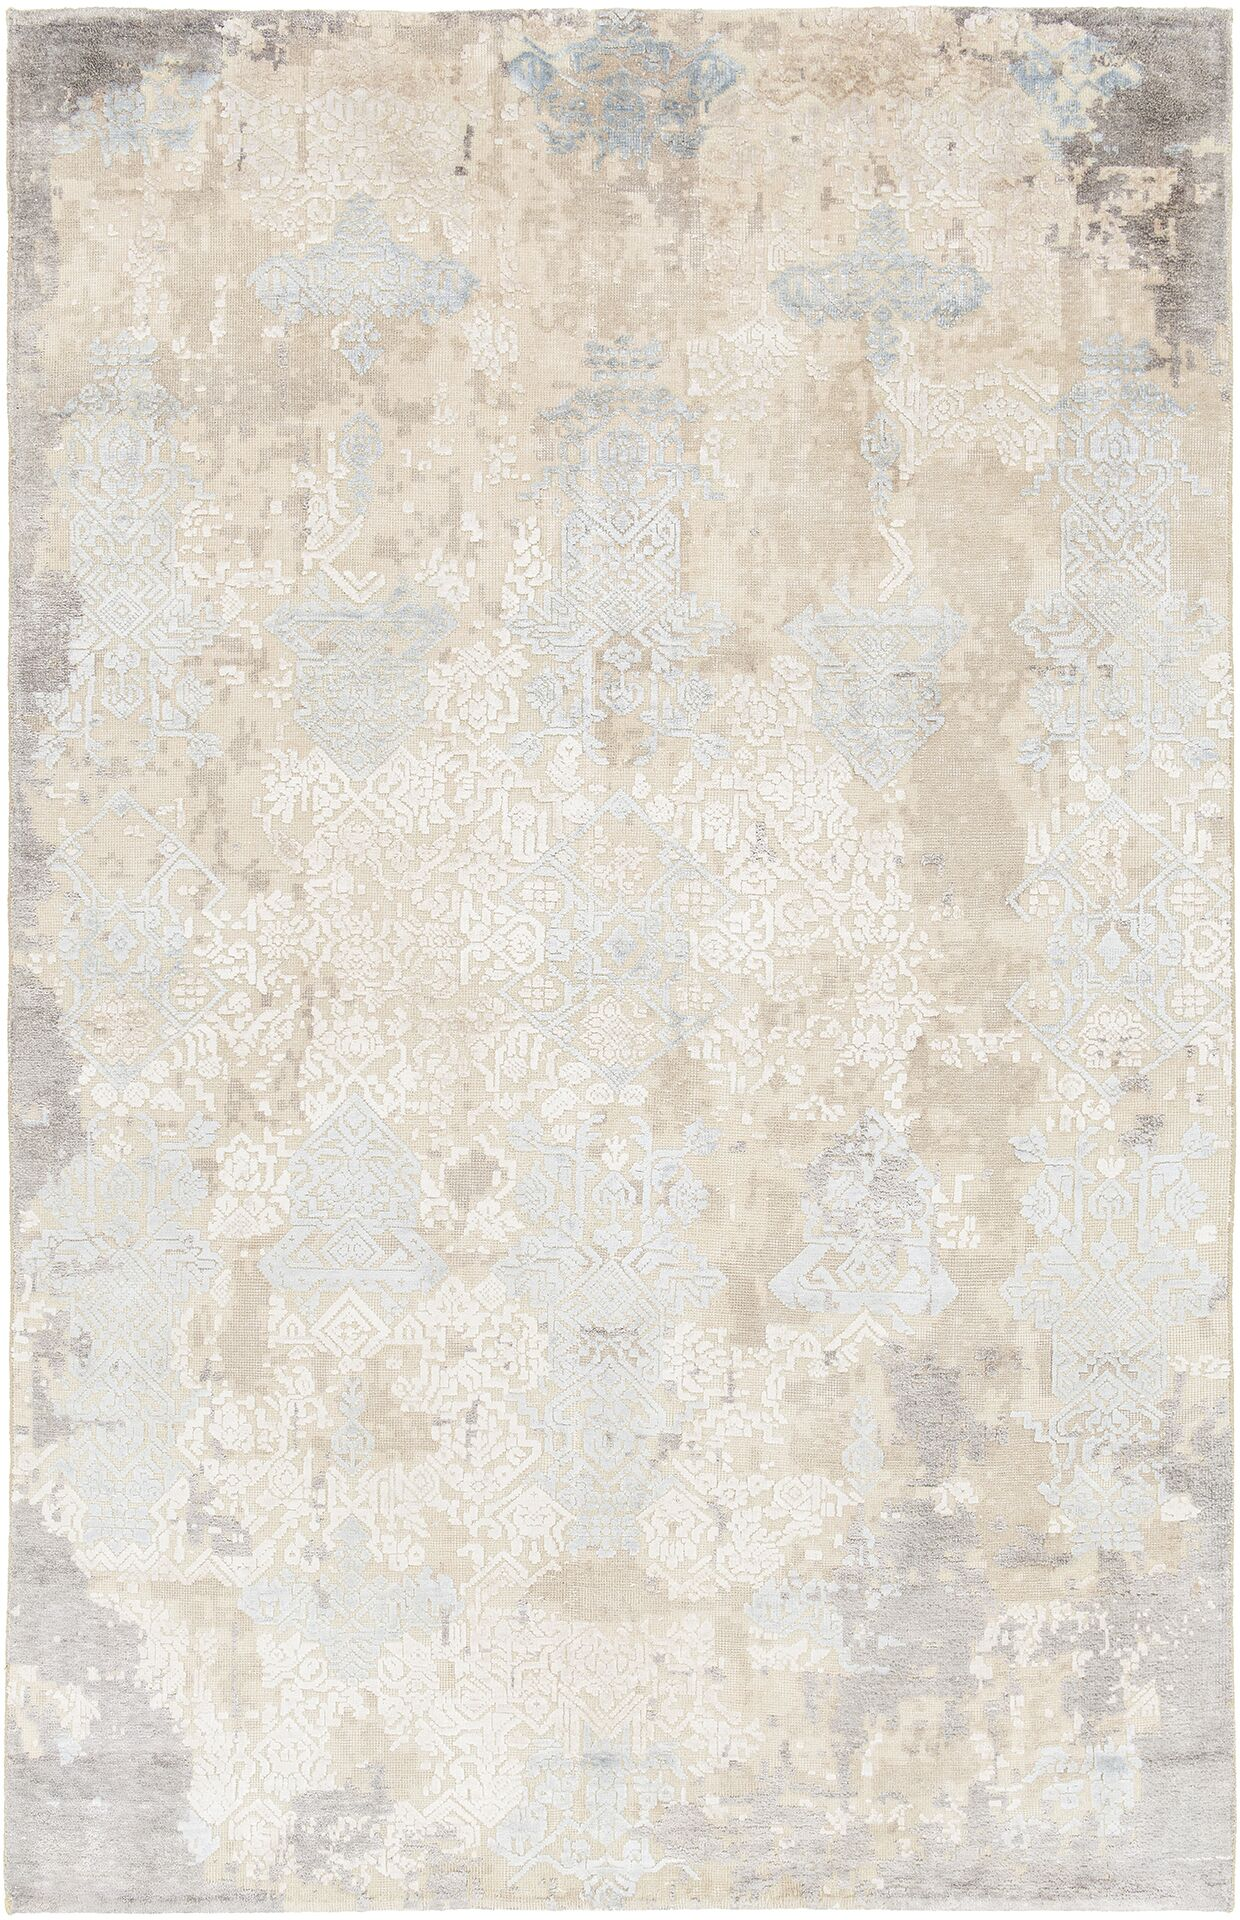 Rodericks Hand-Knotted Beige Wool Area Rug Rug Size: 7'9